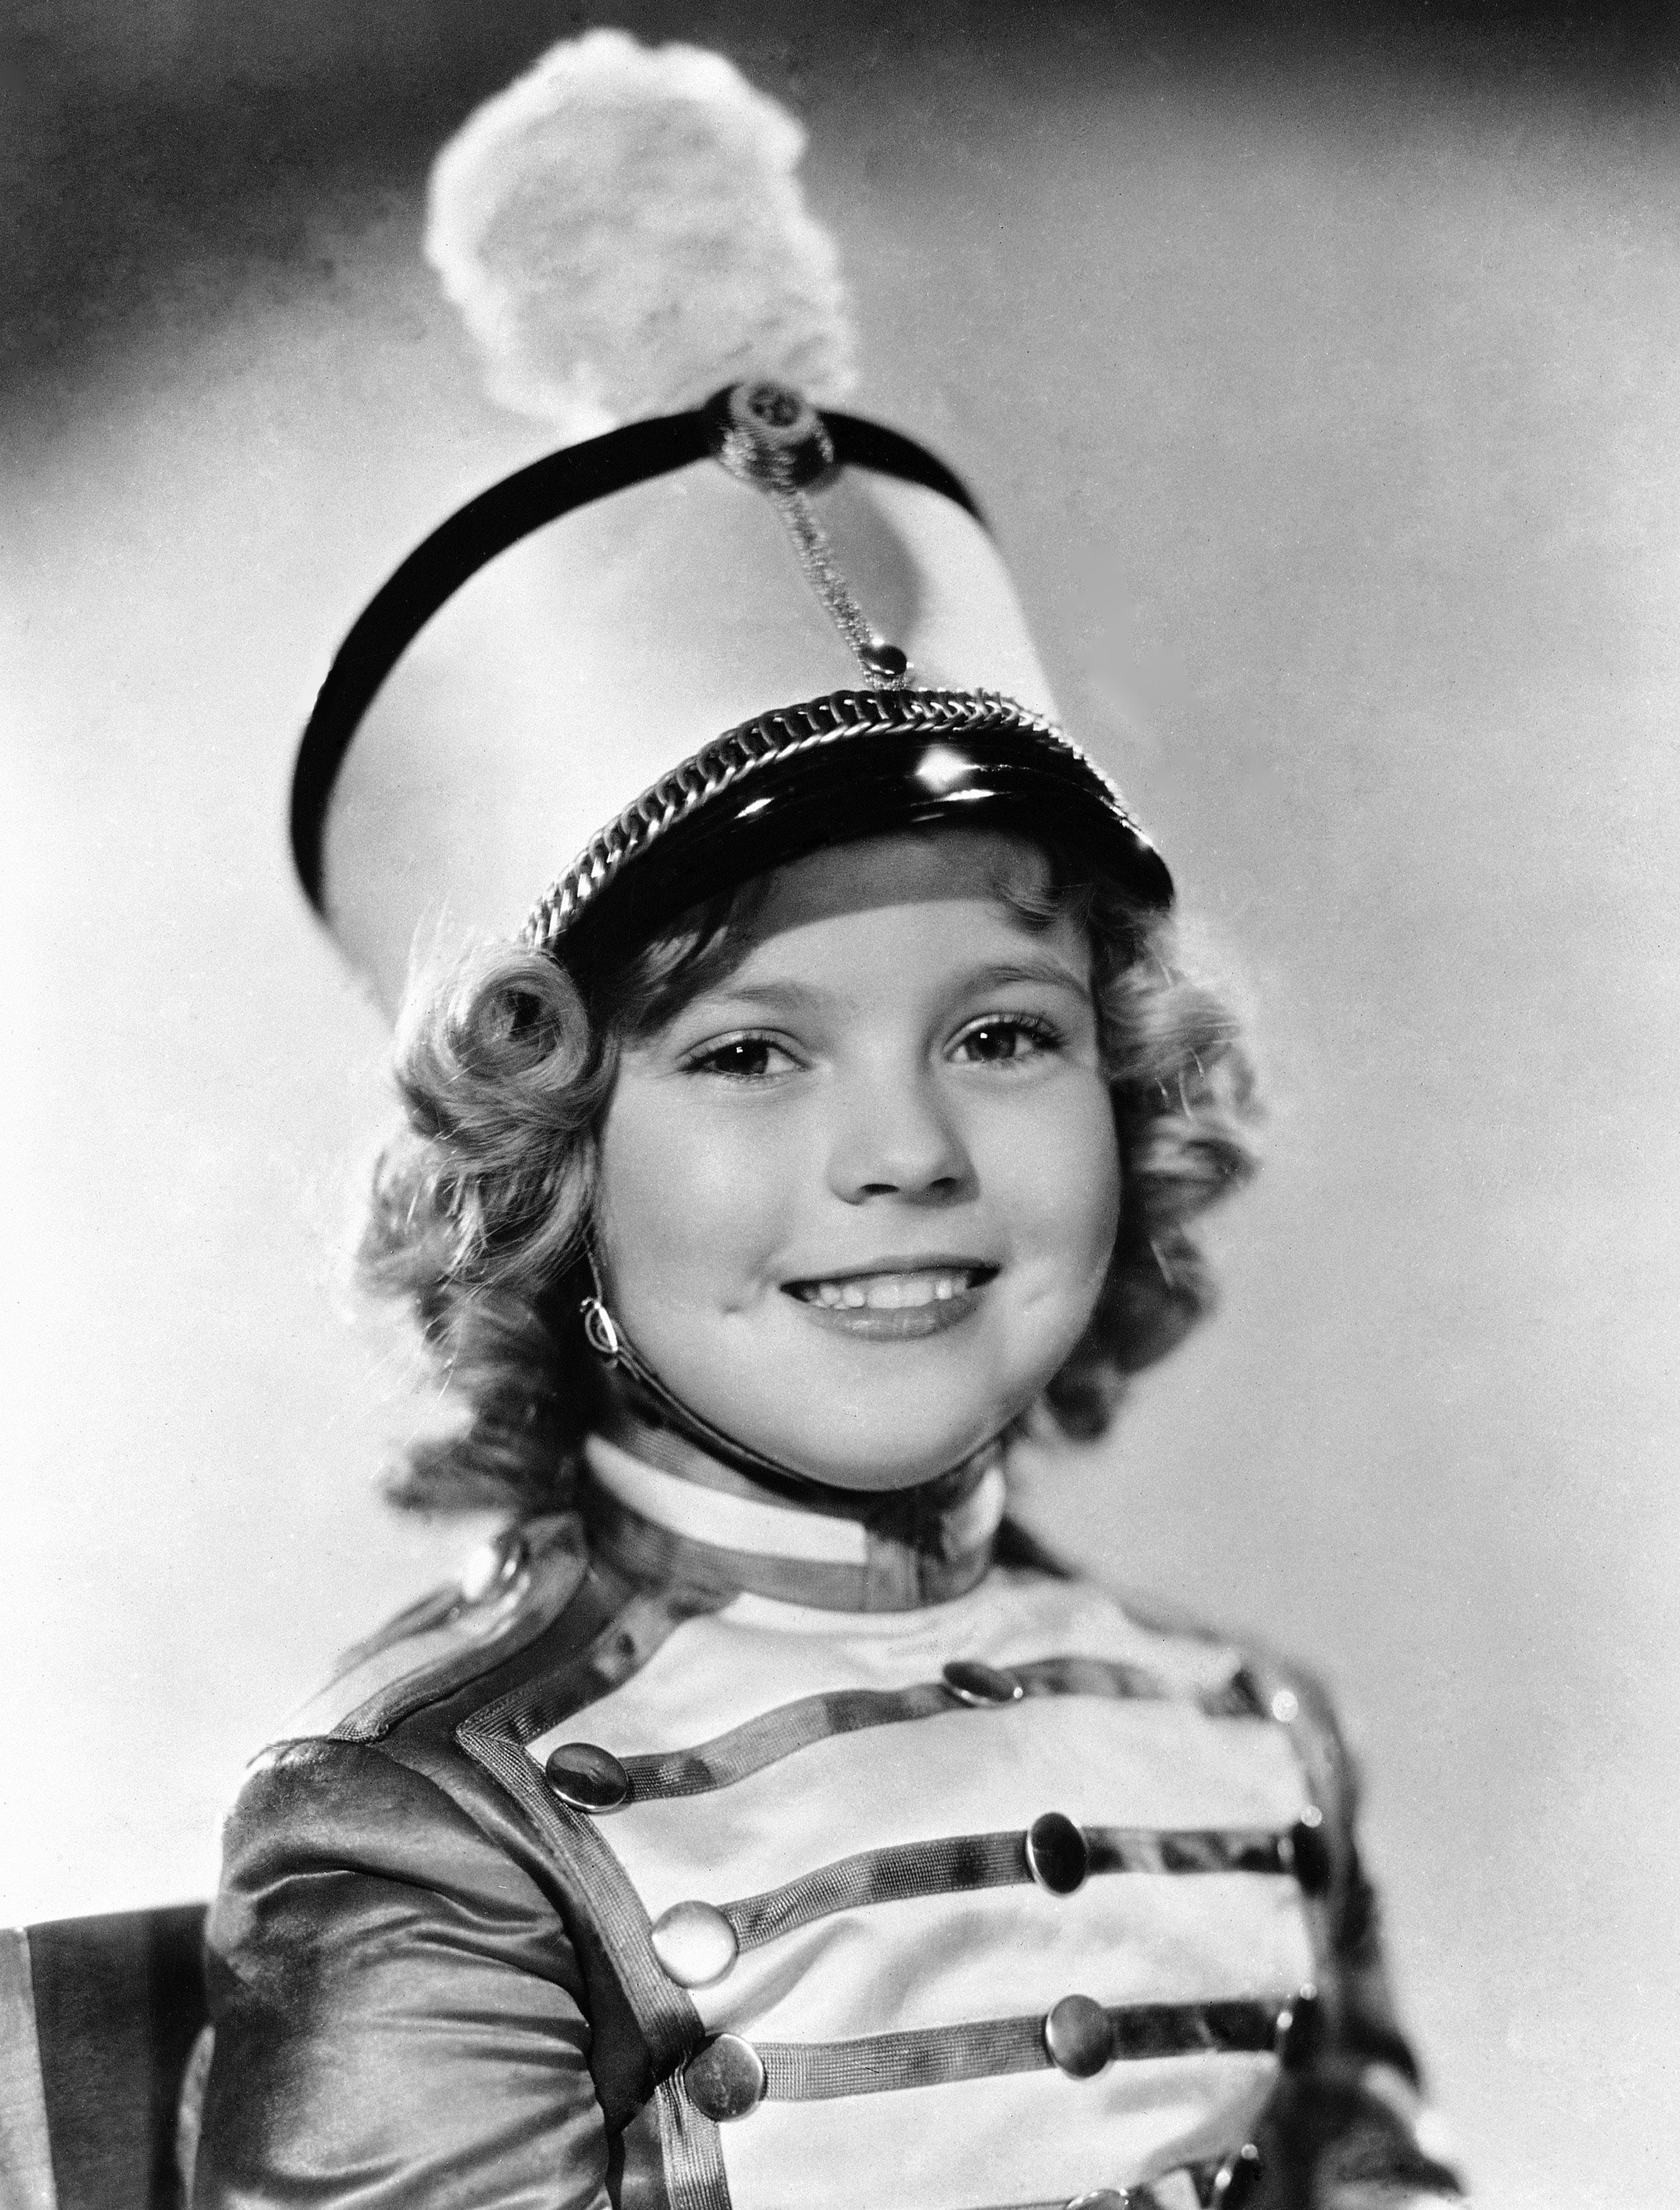 shirley temple last interviewshirley temple пион, shirley temple dvd set infomercial, shirley temple smile song, shirley temple youtube, shirley temple songs, shirley temple peony, shirley temple show, shirley temple movies youtube, shirley temple queen, shirley temple gif, shirley temple biography, shirley temple wiki, shirley temple mp3, shirley temple last interview, shirley temple nba, shirley temple films, shirley temple rezept, shirley temple smokes, shirley temple bobby soxer, shirley temple pictures